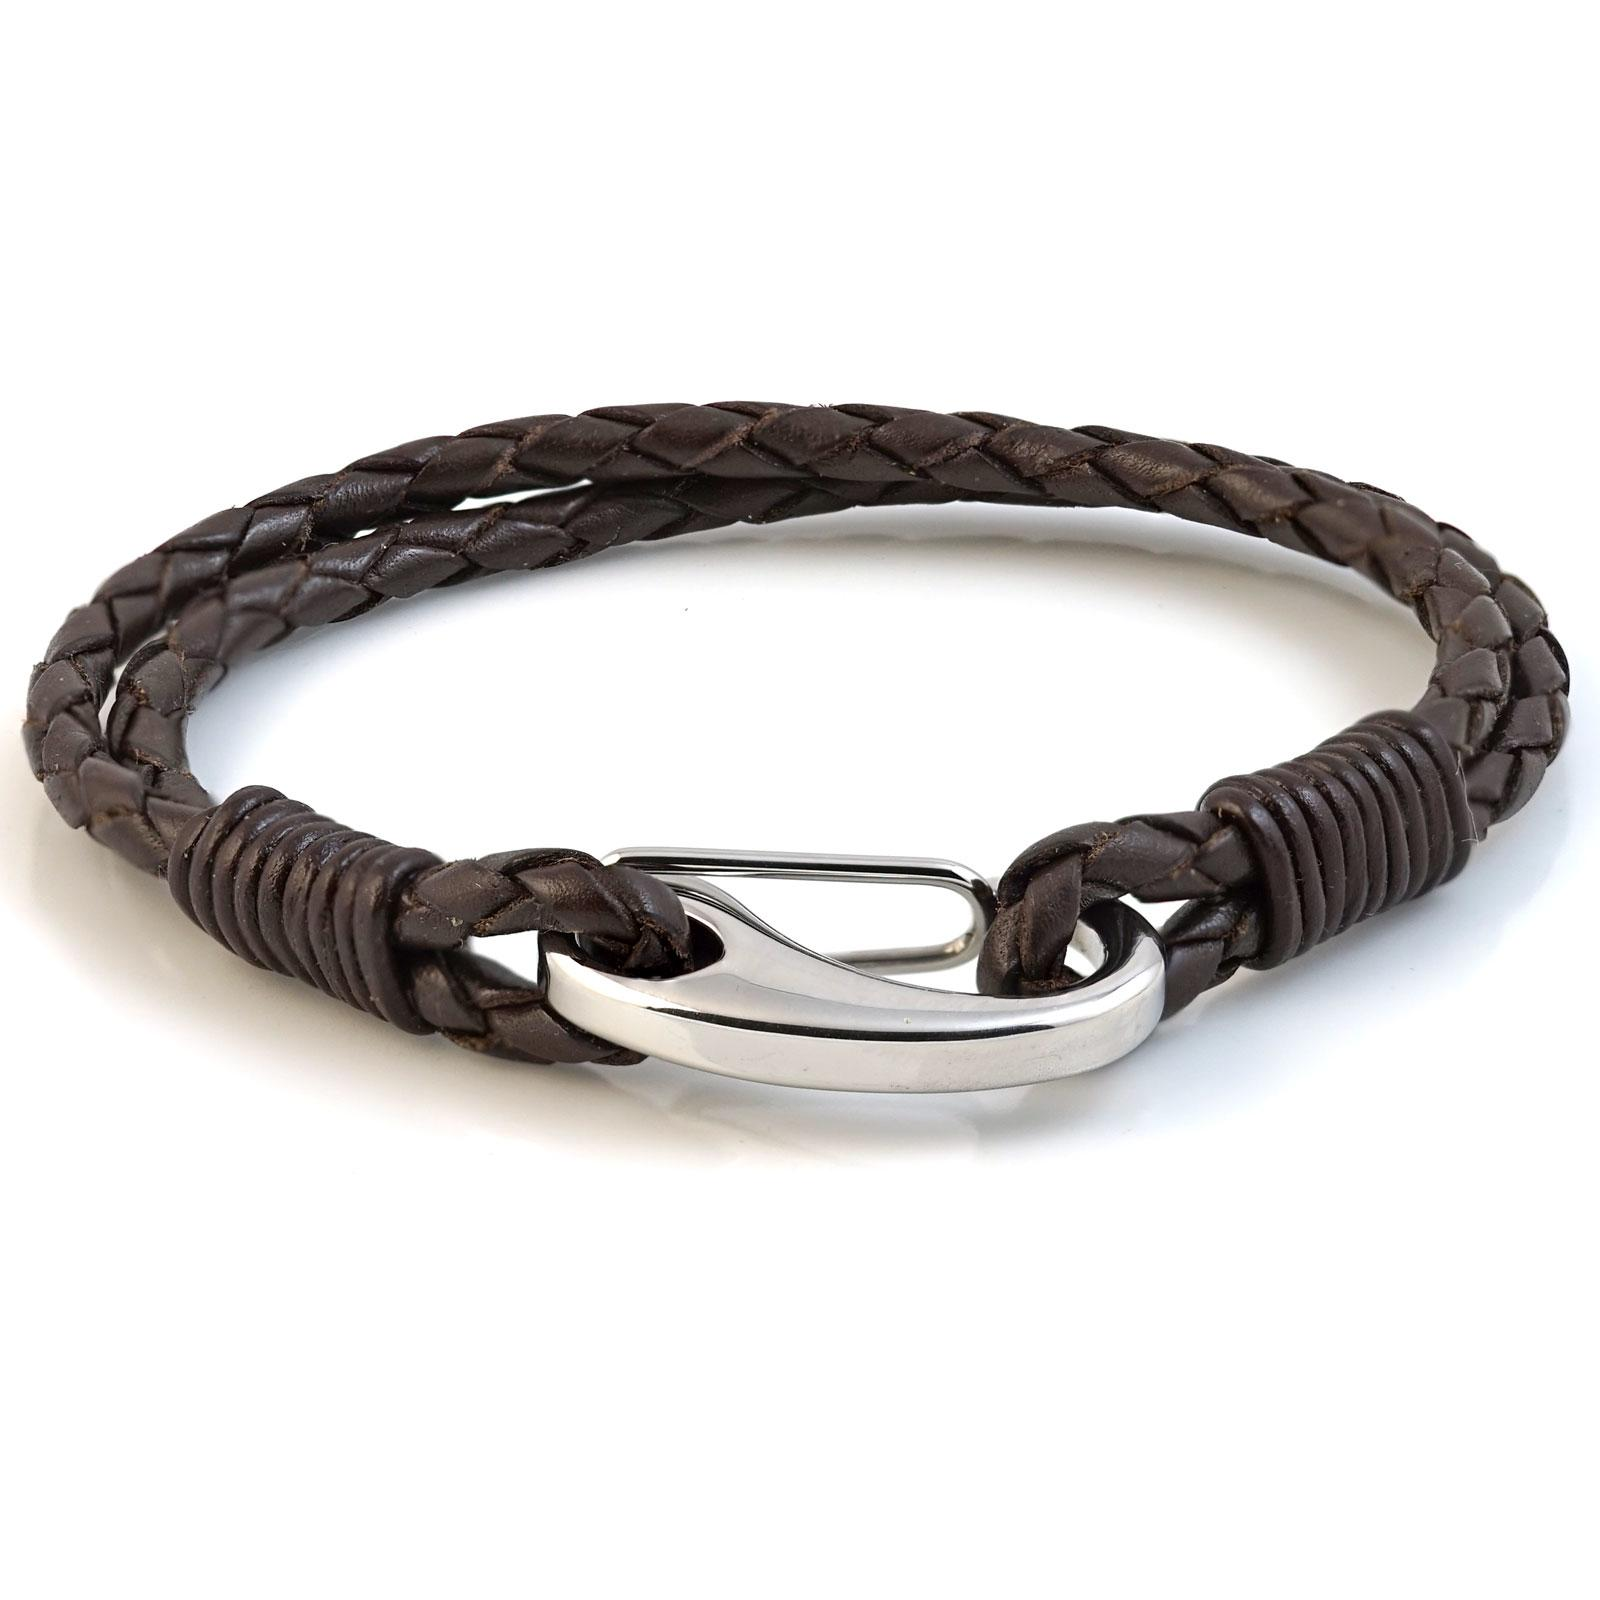 Brown Two Strap Bolo Leather Bracelet with Steel Lobster Clasp